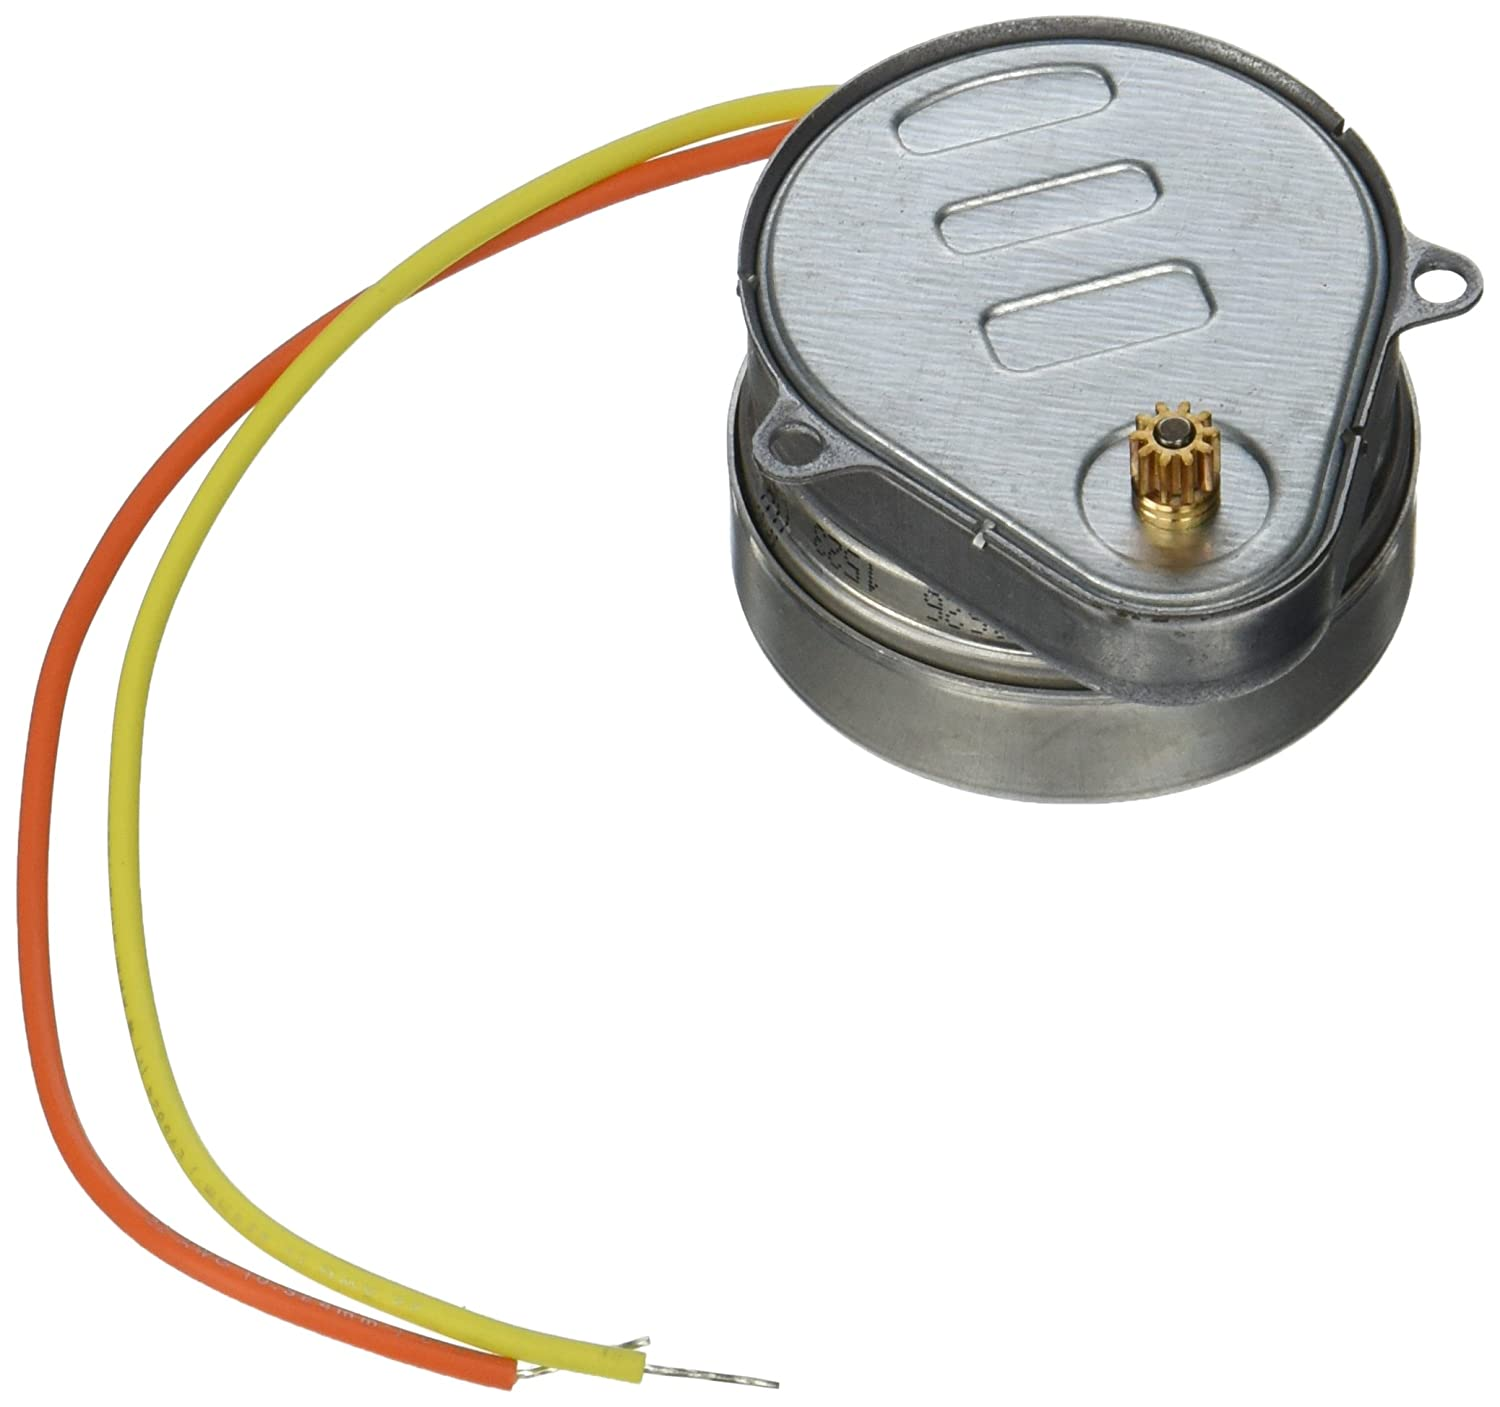 Honeywell 802360ja B Replacement Motor For V8043 8044 Zone Valves Fan Limit Switch Hvac Controls